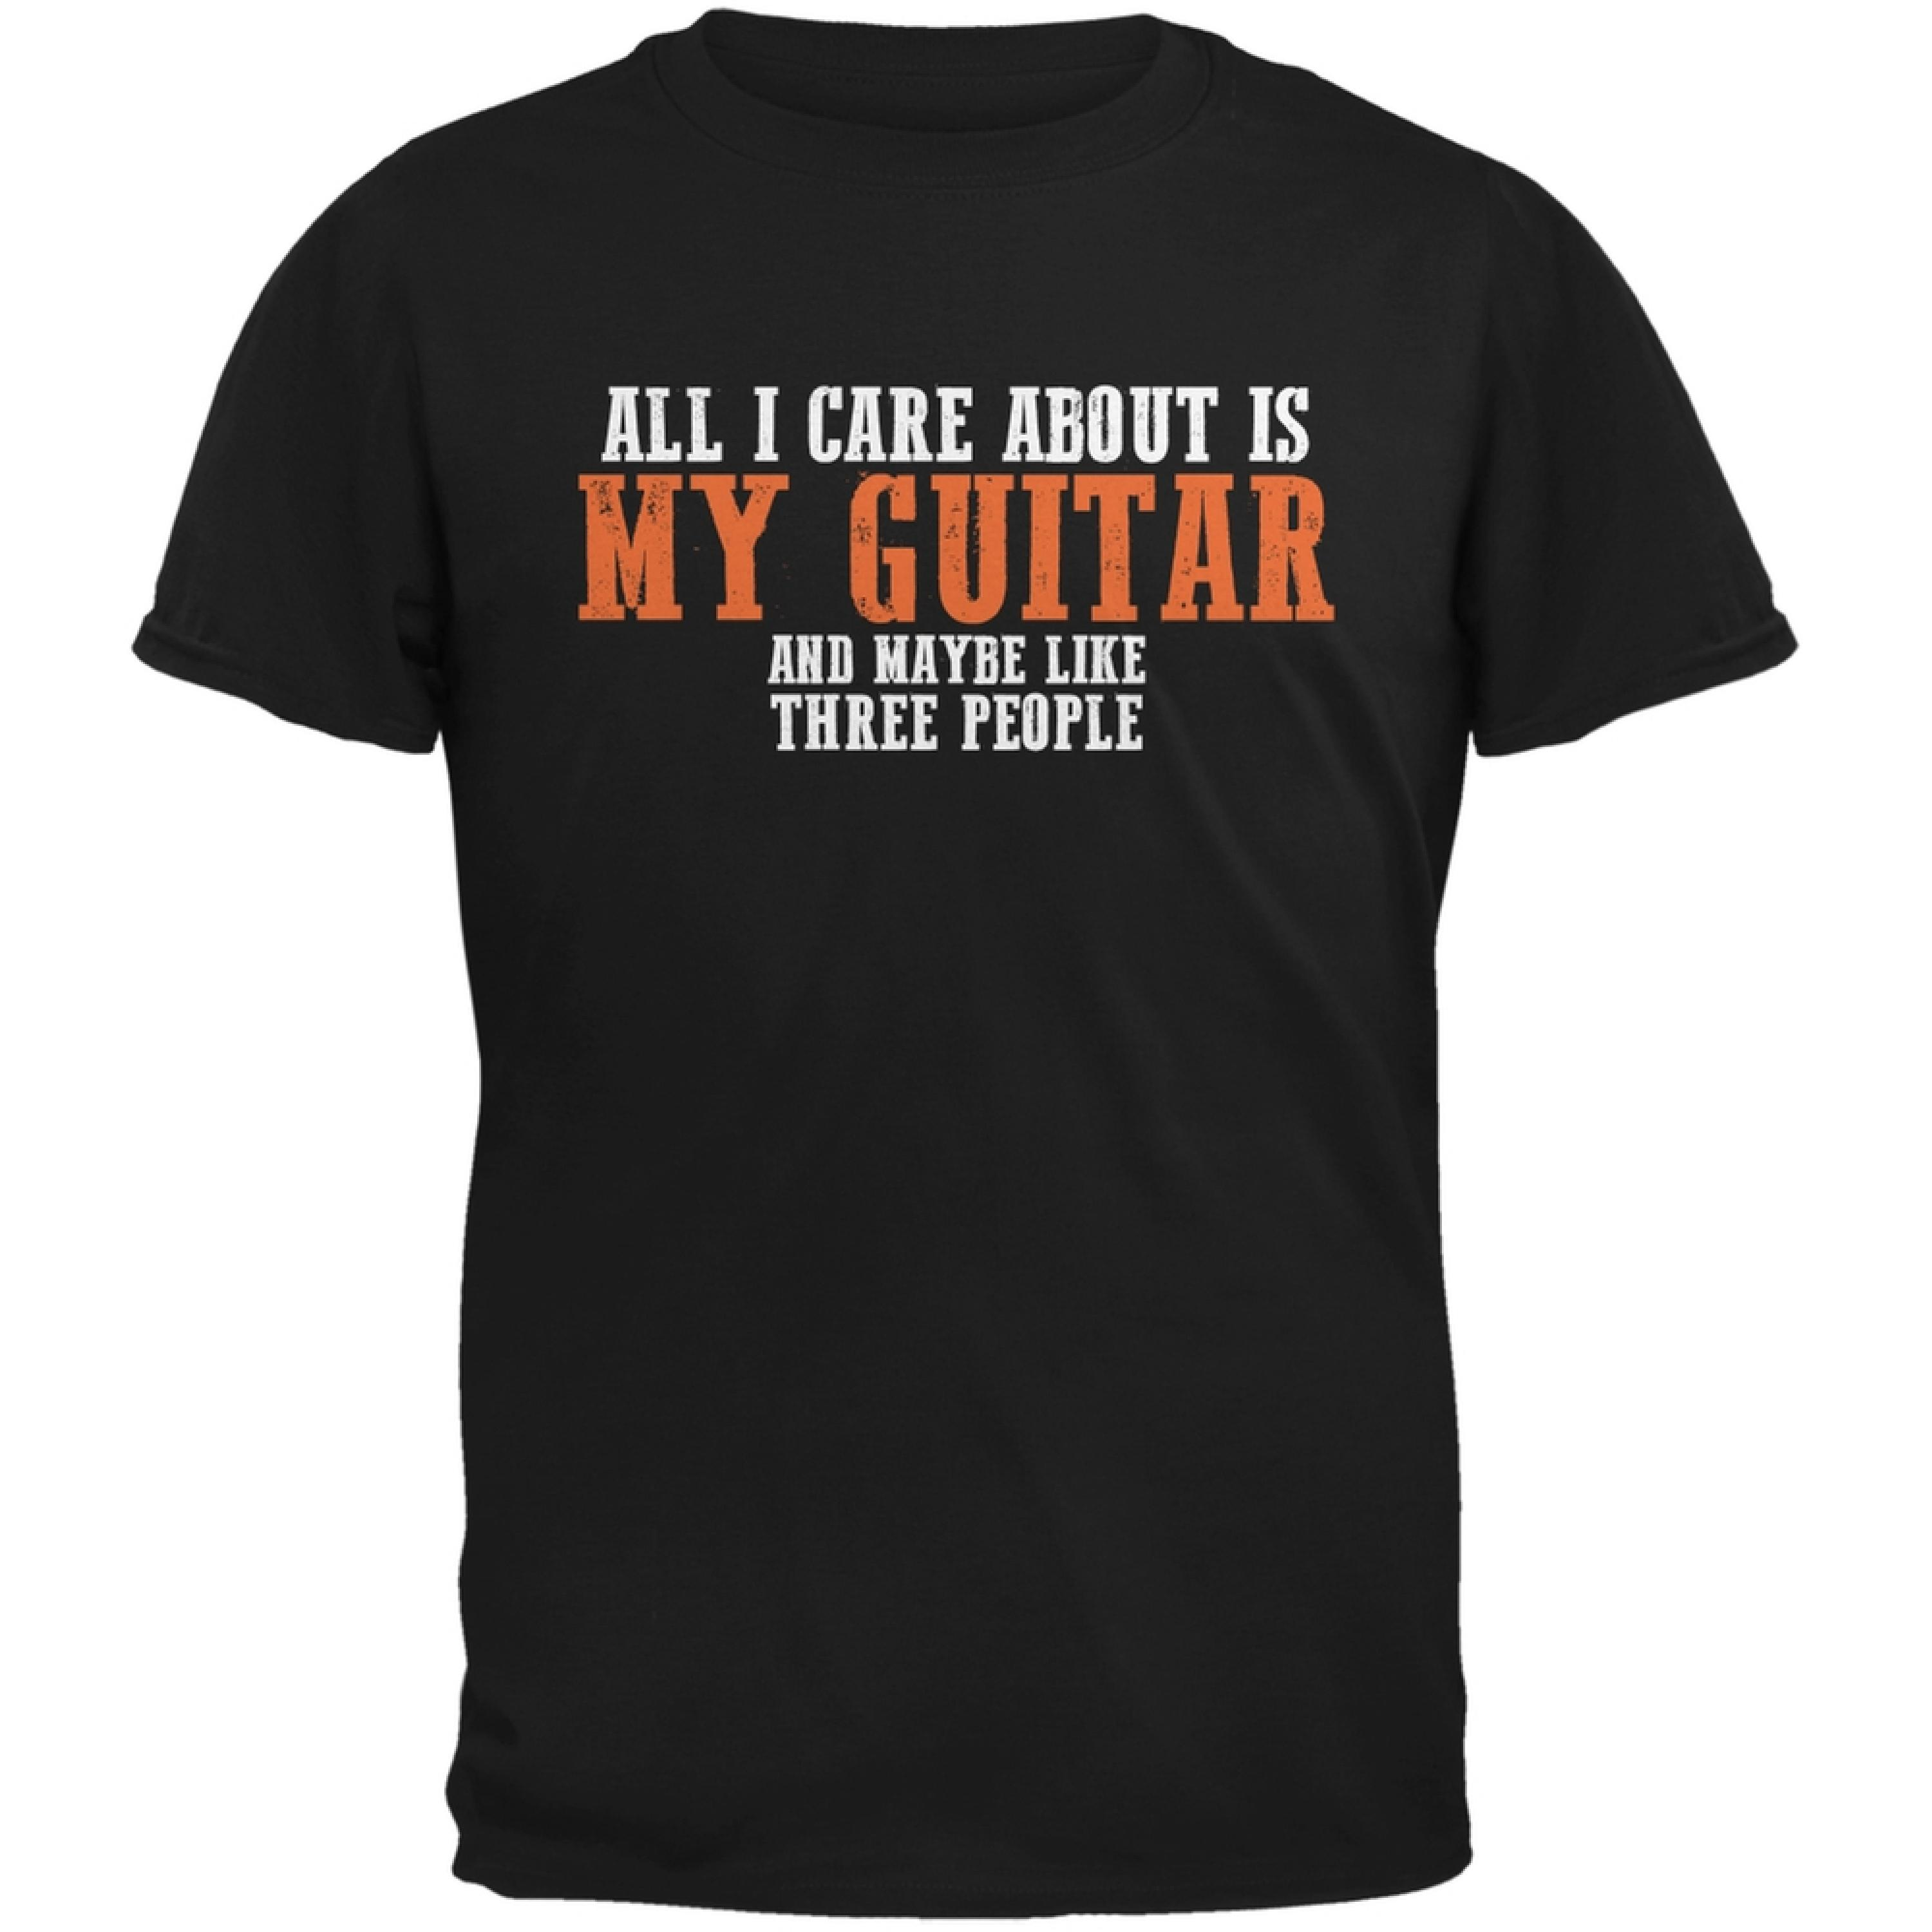 Sarcastic Care About My Guitar Black Adult T-Shirt